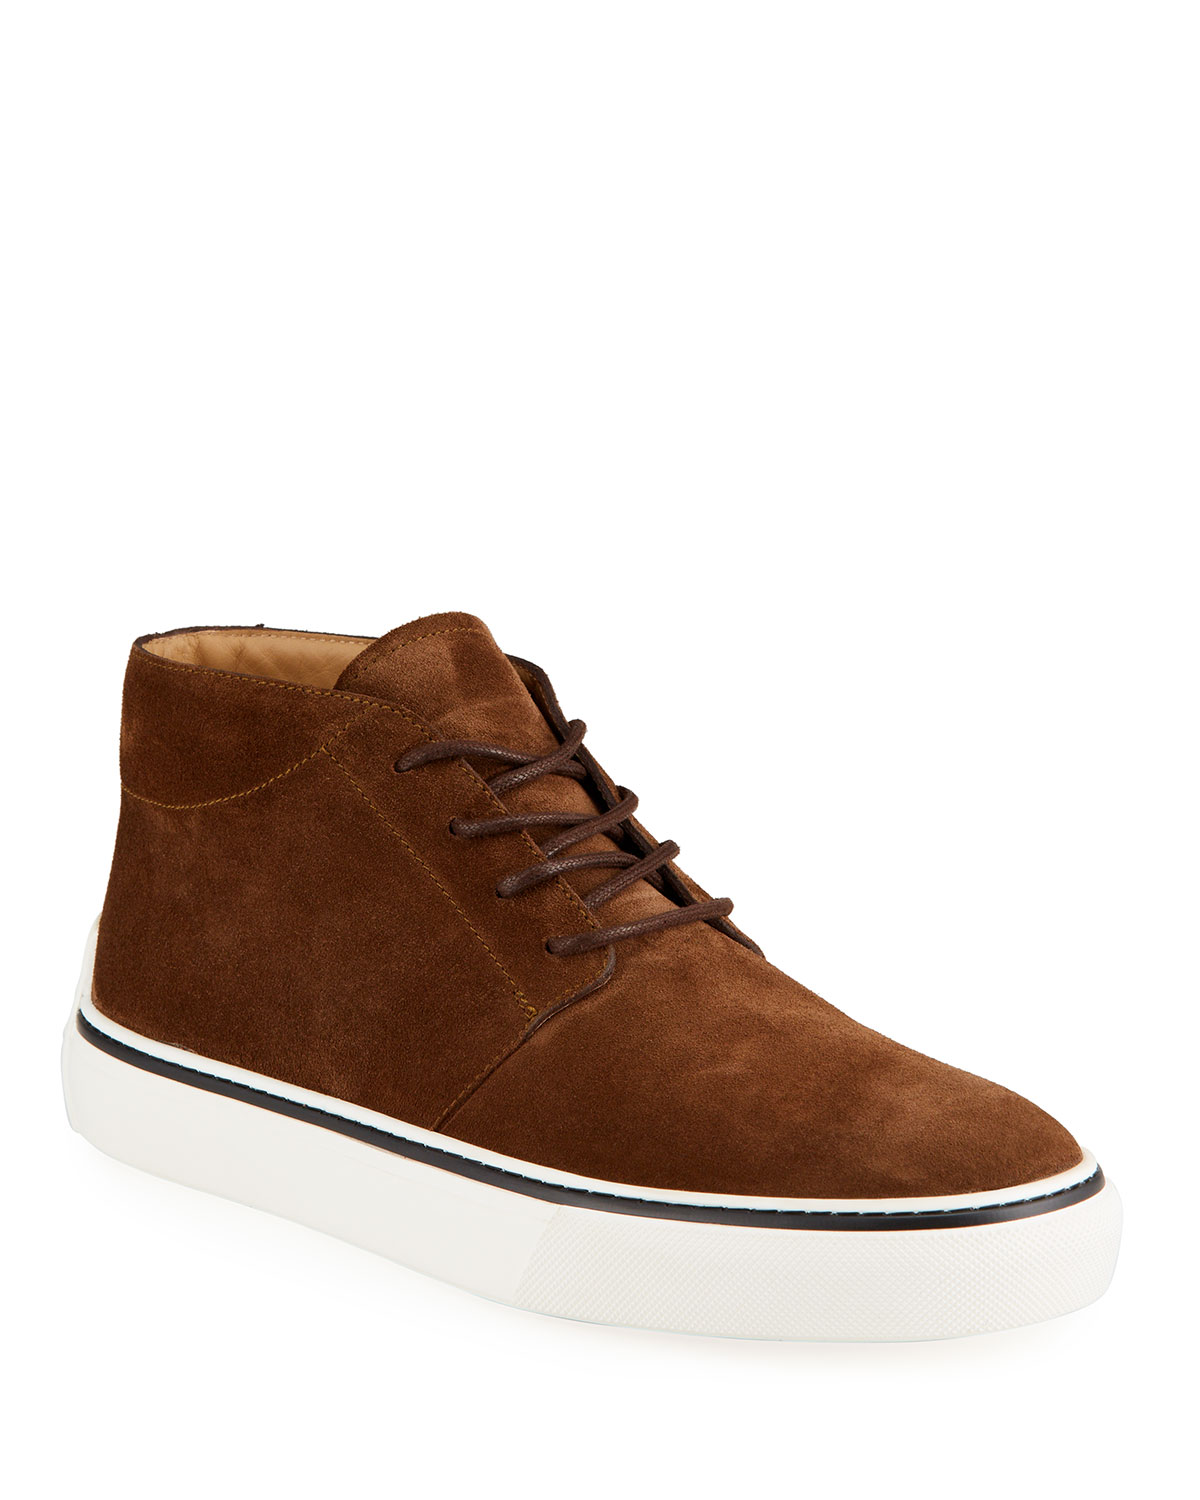 Tod's MEN'S POLACCO SUEDE SNEAKERS